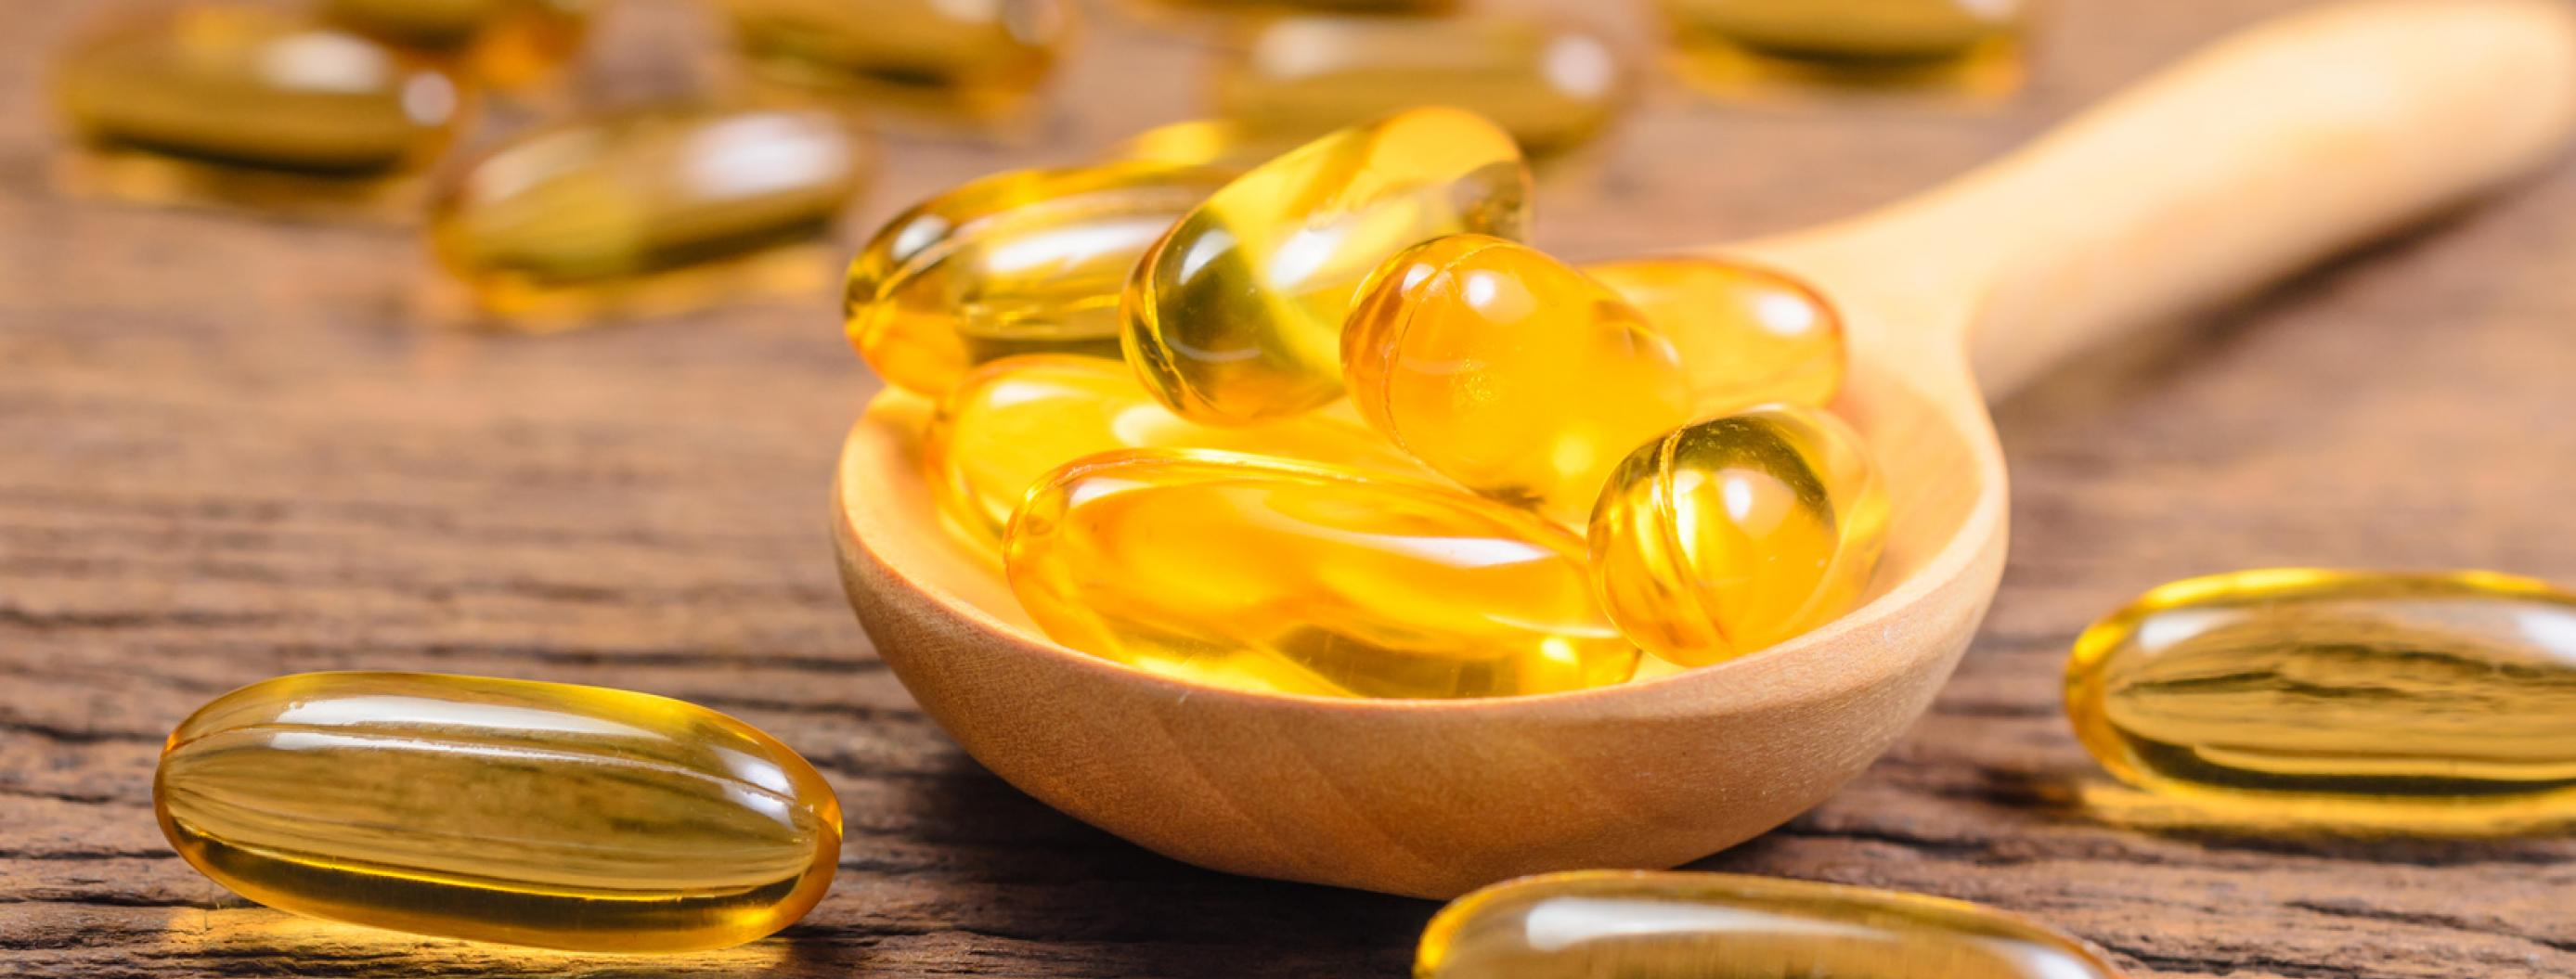 Omega-3 Supplements Don't Help Prevent Diseases